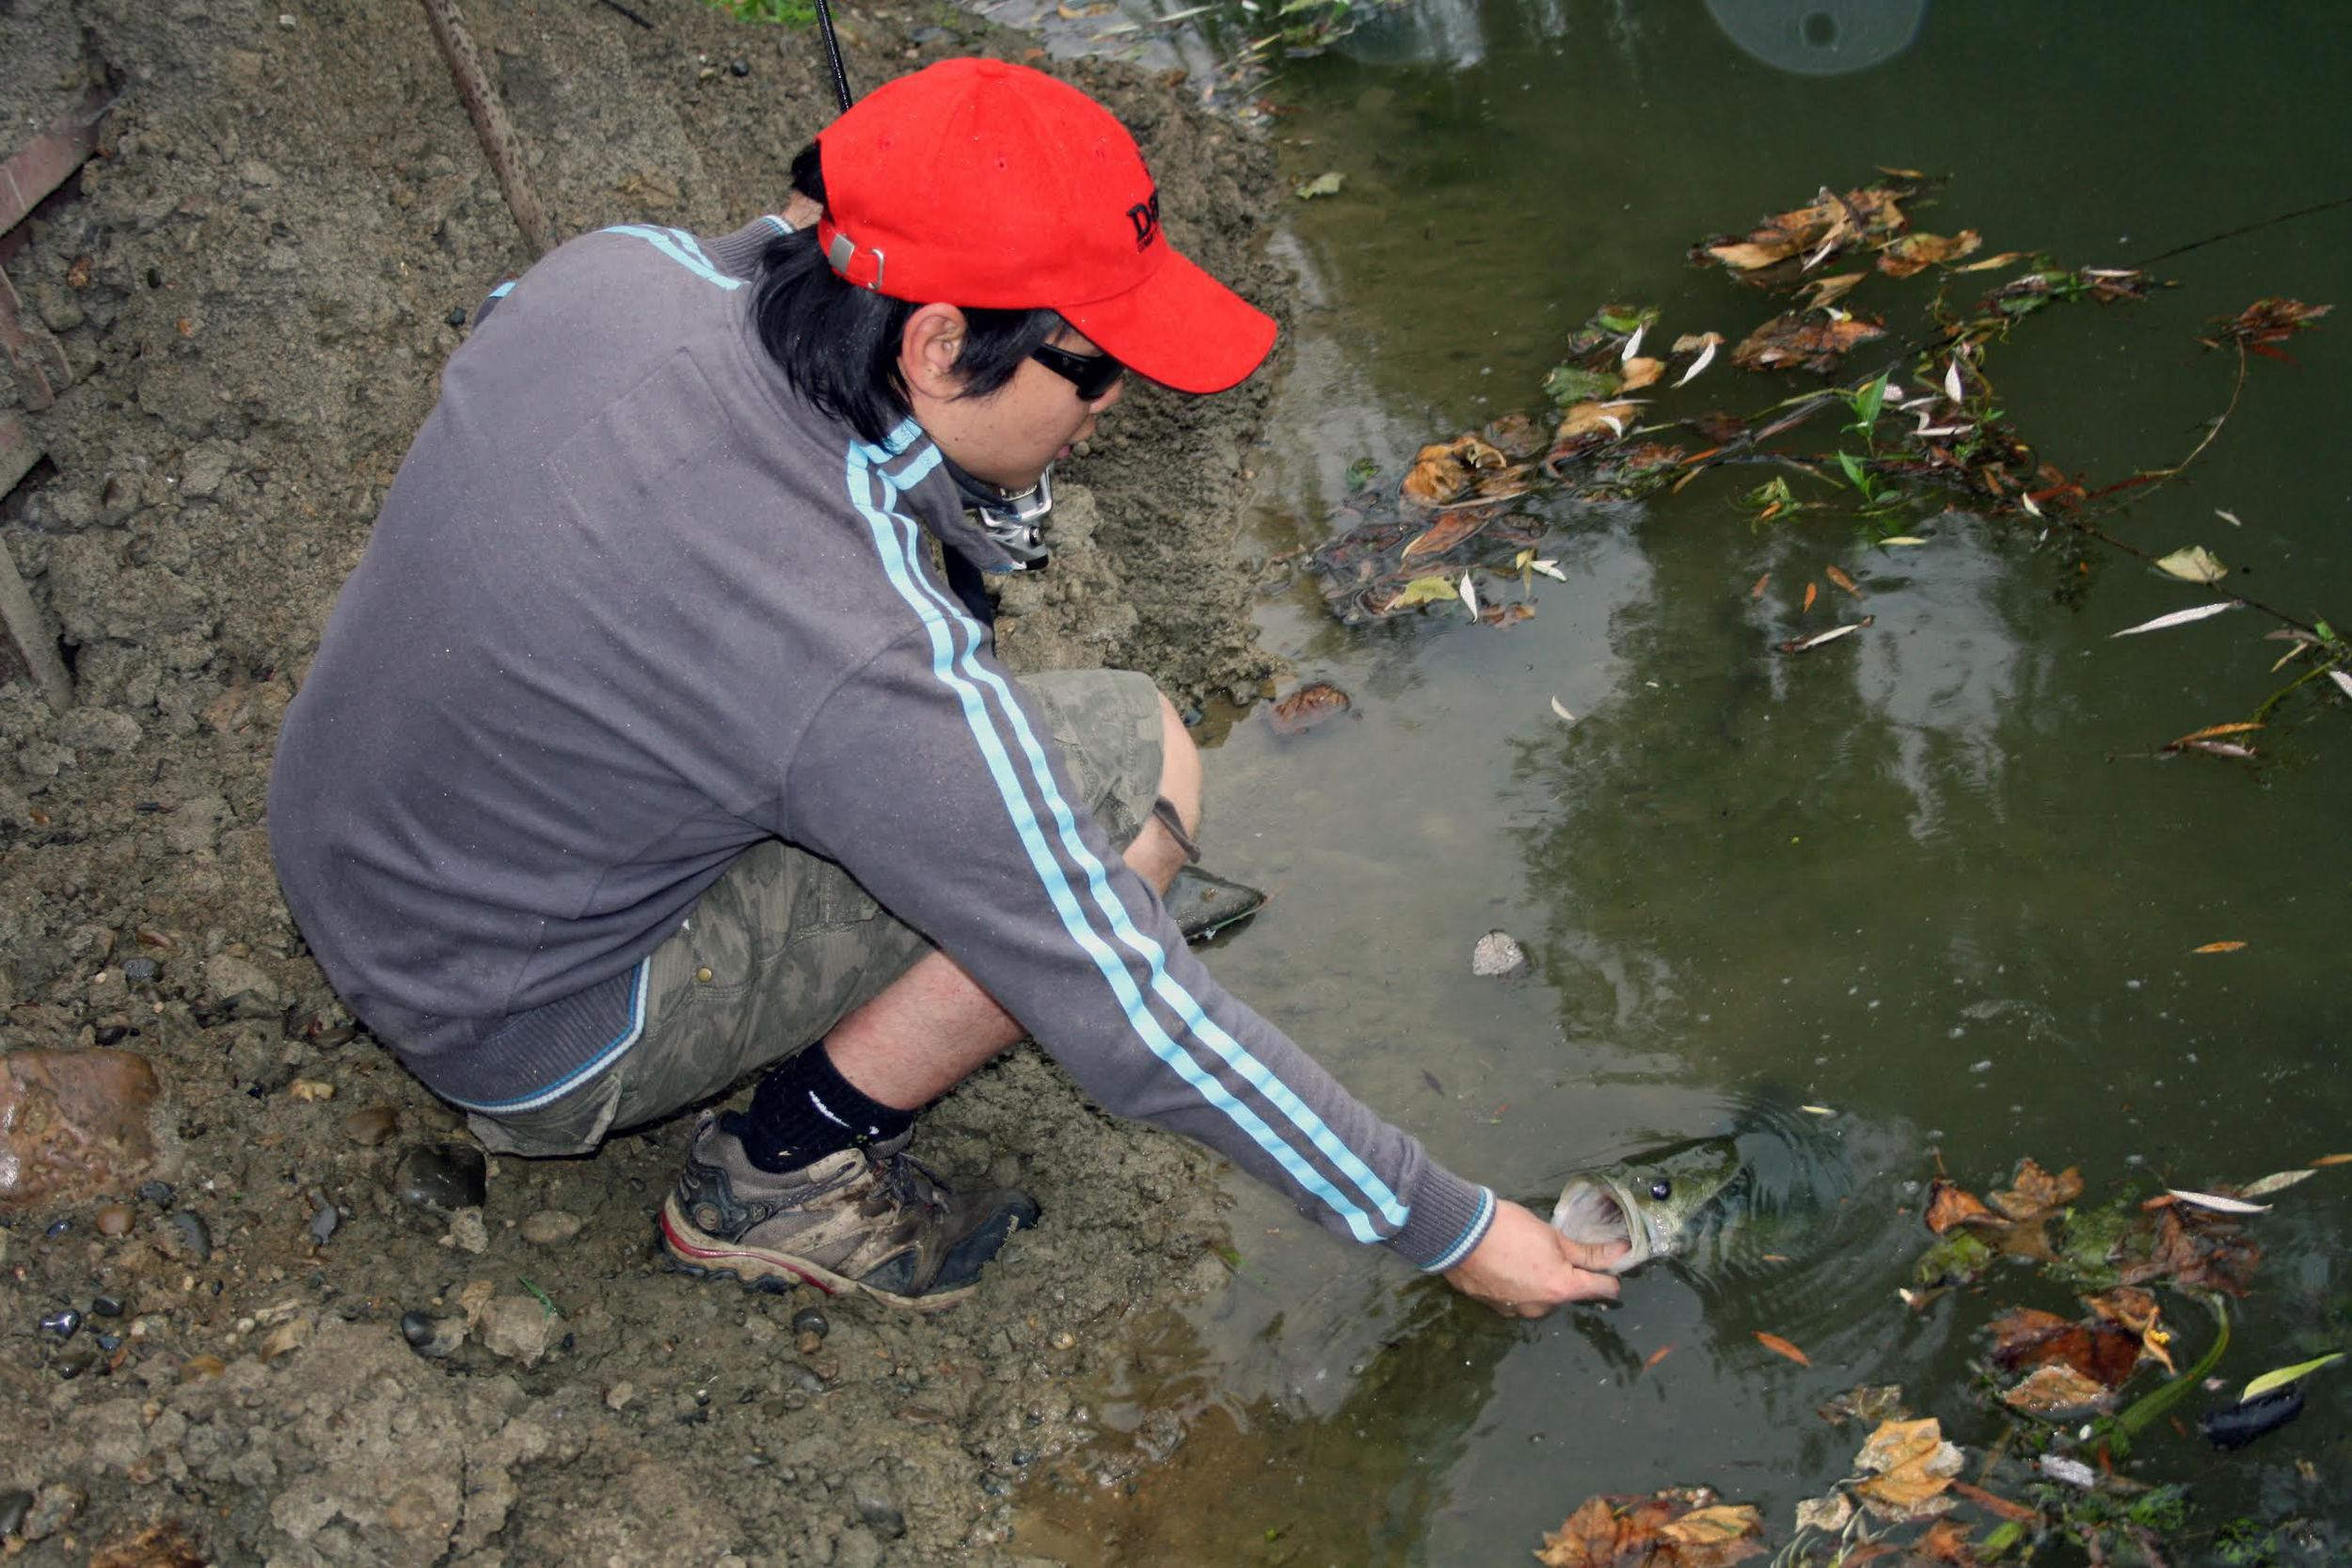 Pic. 3. Releasing a fish so that other anglers get to catch it someday.